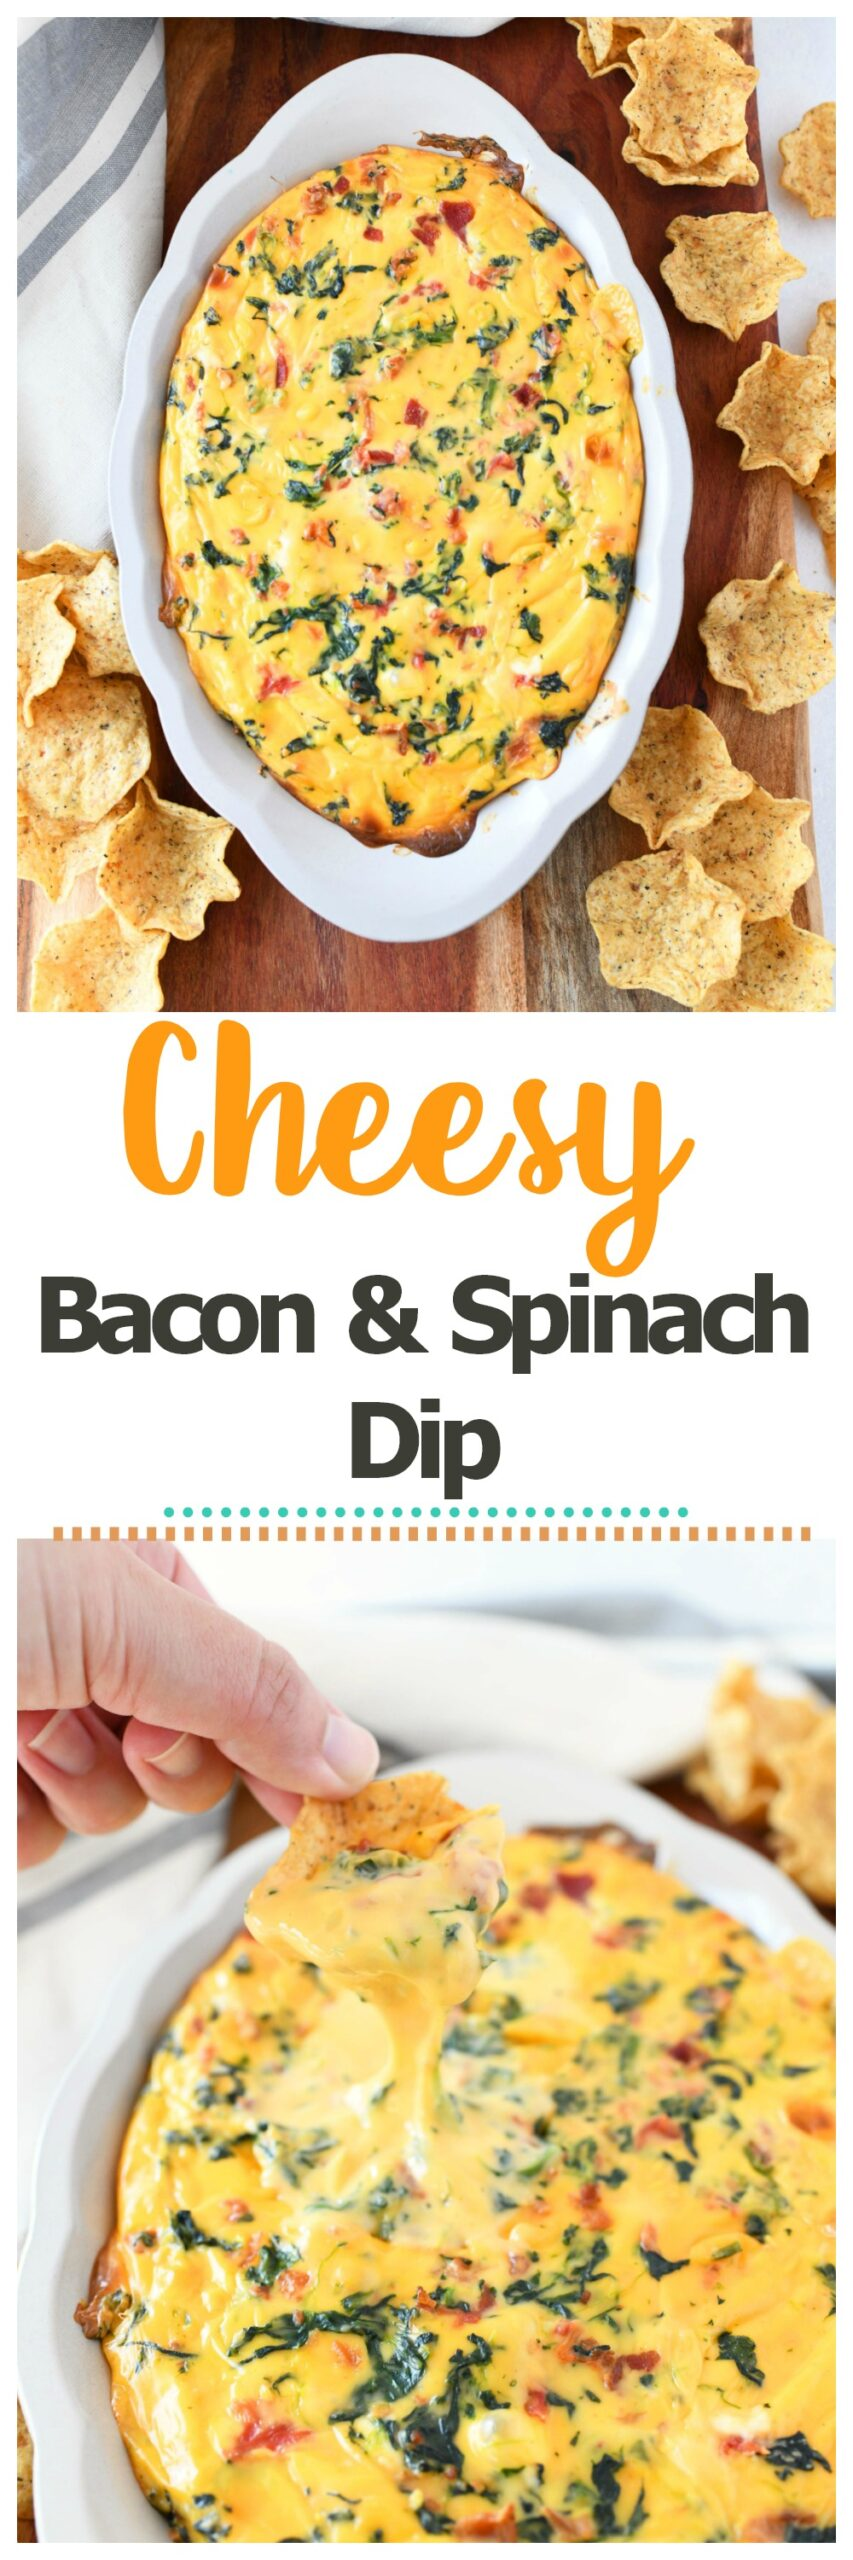 Baked Cheesy Bacon & Spinach Dip